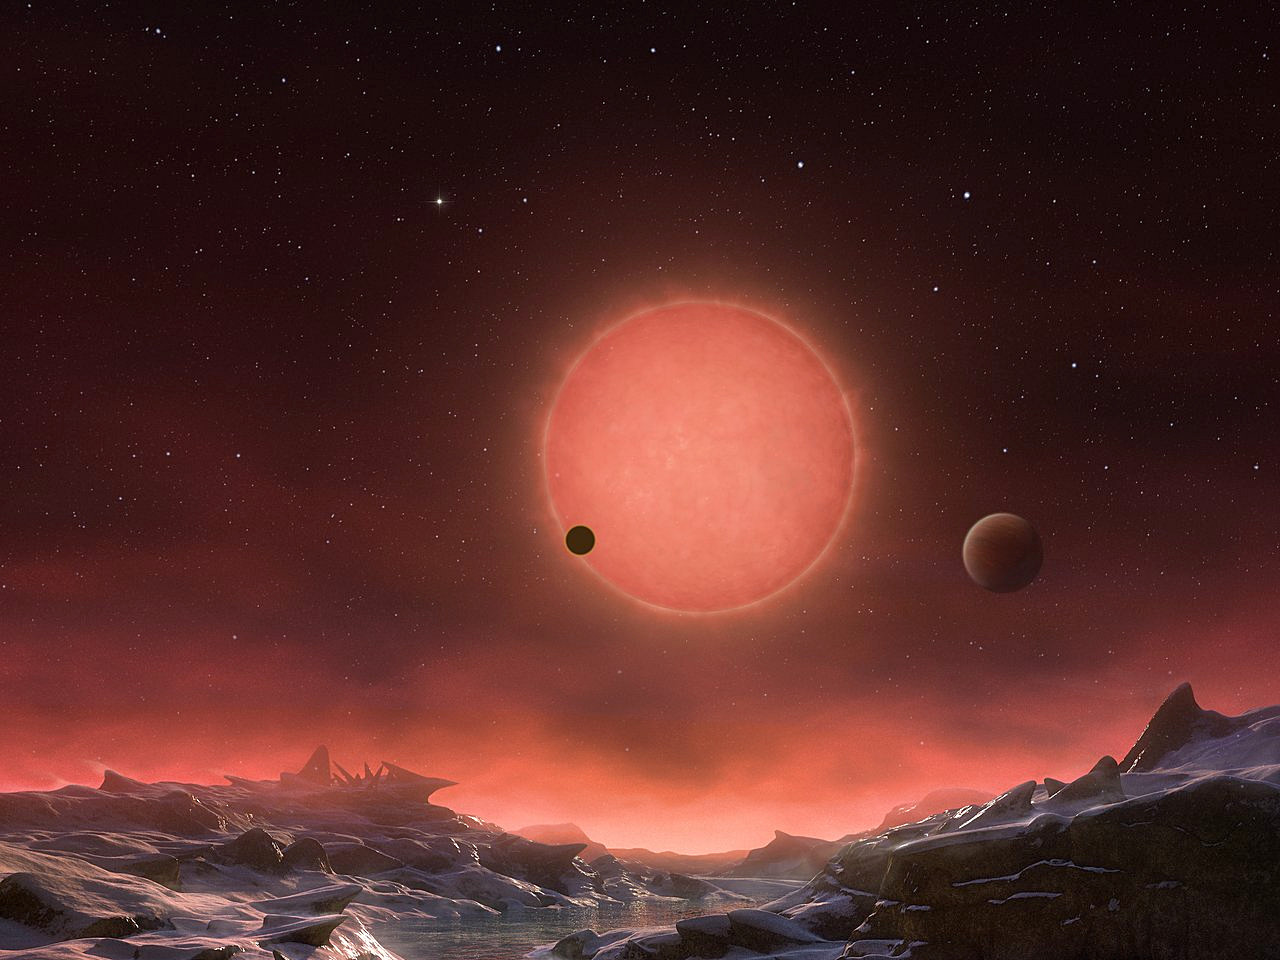 This artist's impression shows an imagined view from the surface one of the three planets orbiting an ultra-cool dwarf star just 40 light-years from Earth that were discovered using the TRAPPIST telescope at ESO's La Silla Observatory. These worlds have sizes and temperatures similar to those of Venus and Earth and are the best targets found so far for the search for life outside the solar system. They are the first planets ever discovered around such a tiny and dim star. In this view, one of the inner planets is seen in transit across the disc of its tiny and dim parent star. Image credit: ESO/M. Kornmesser.